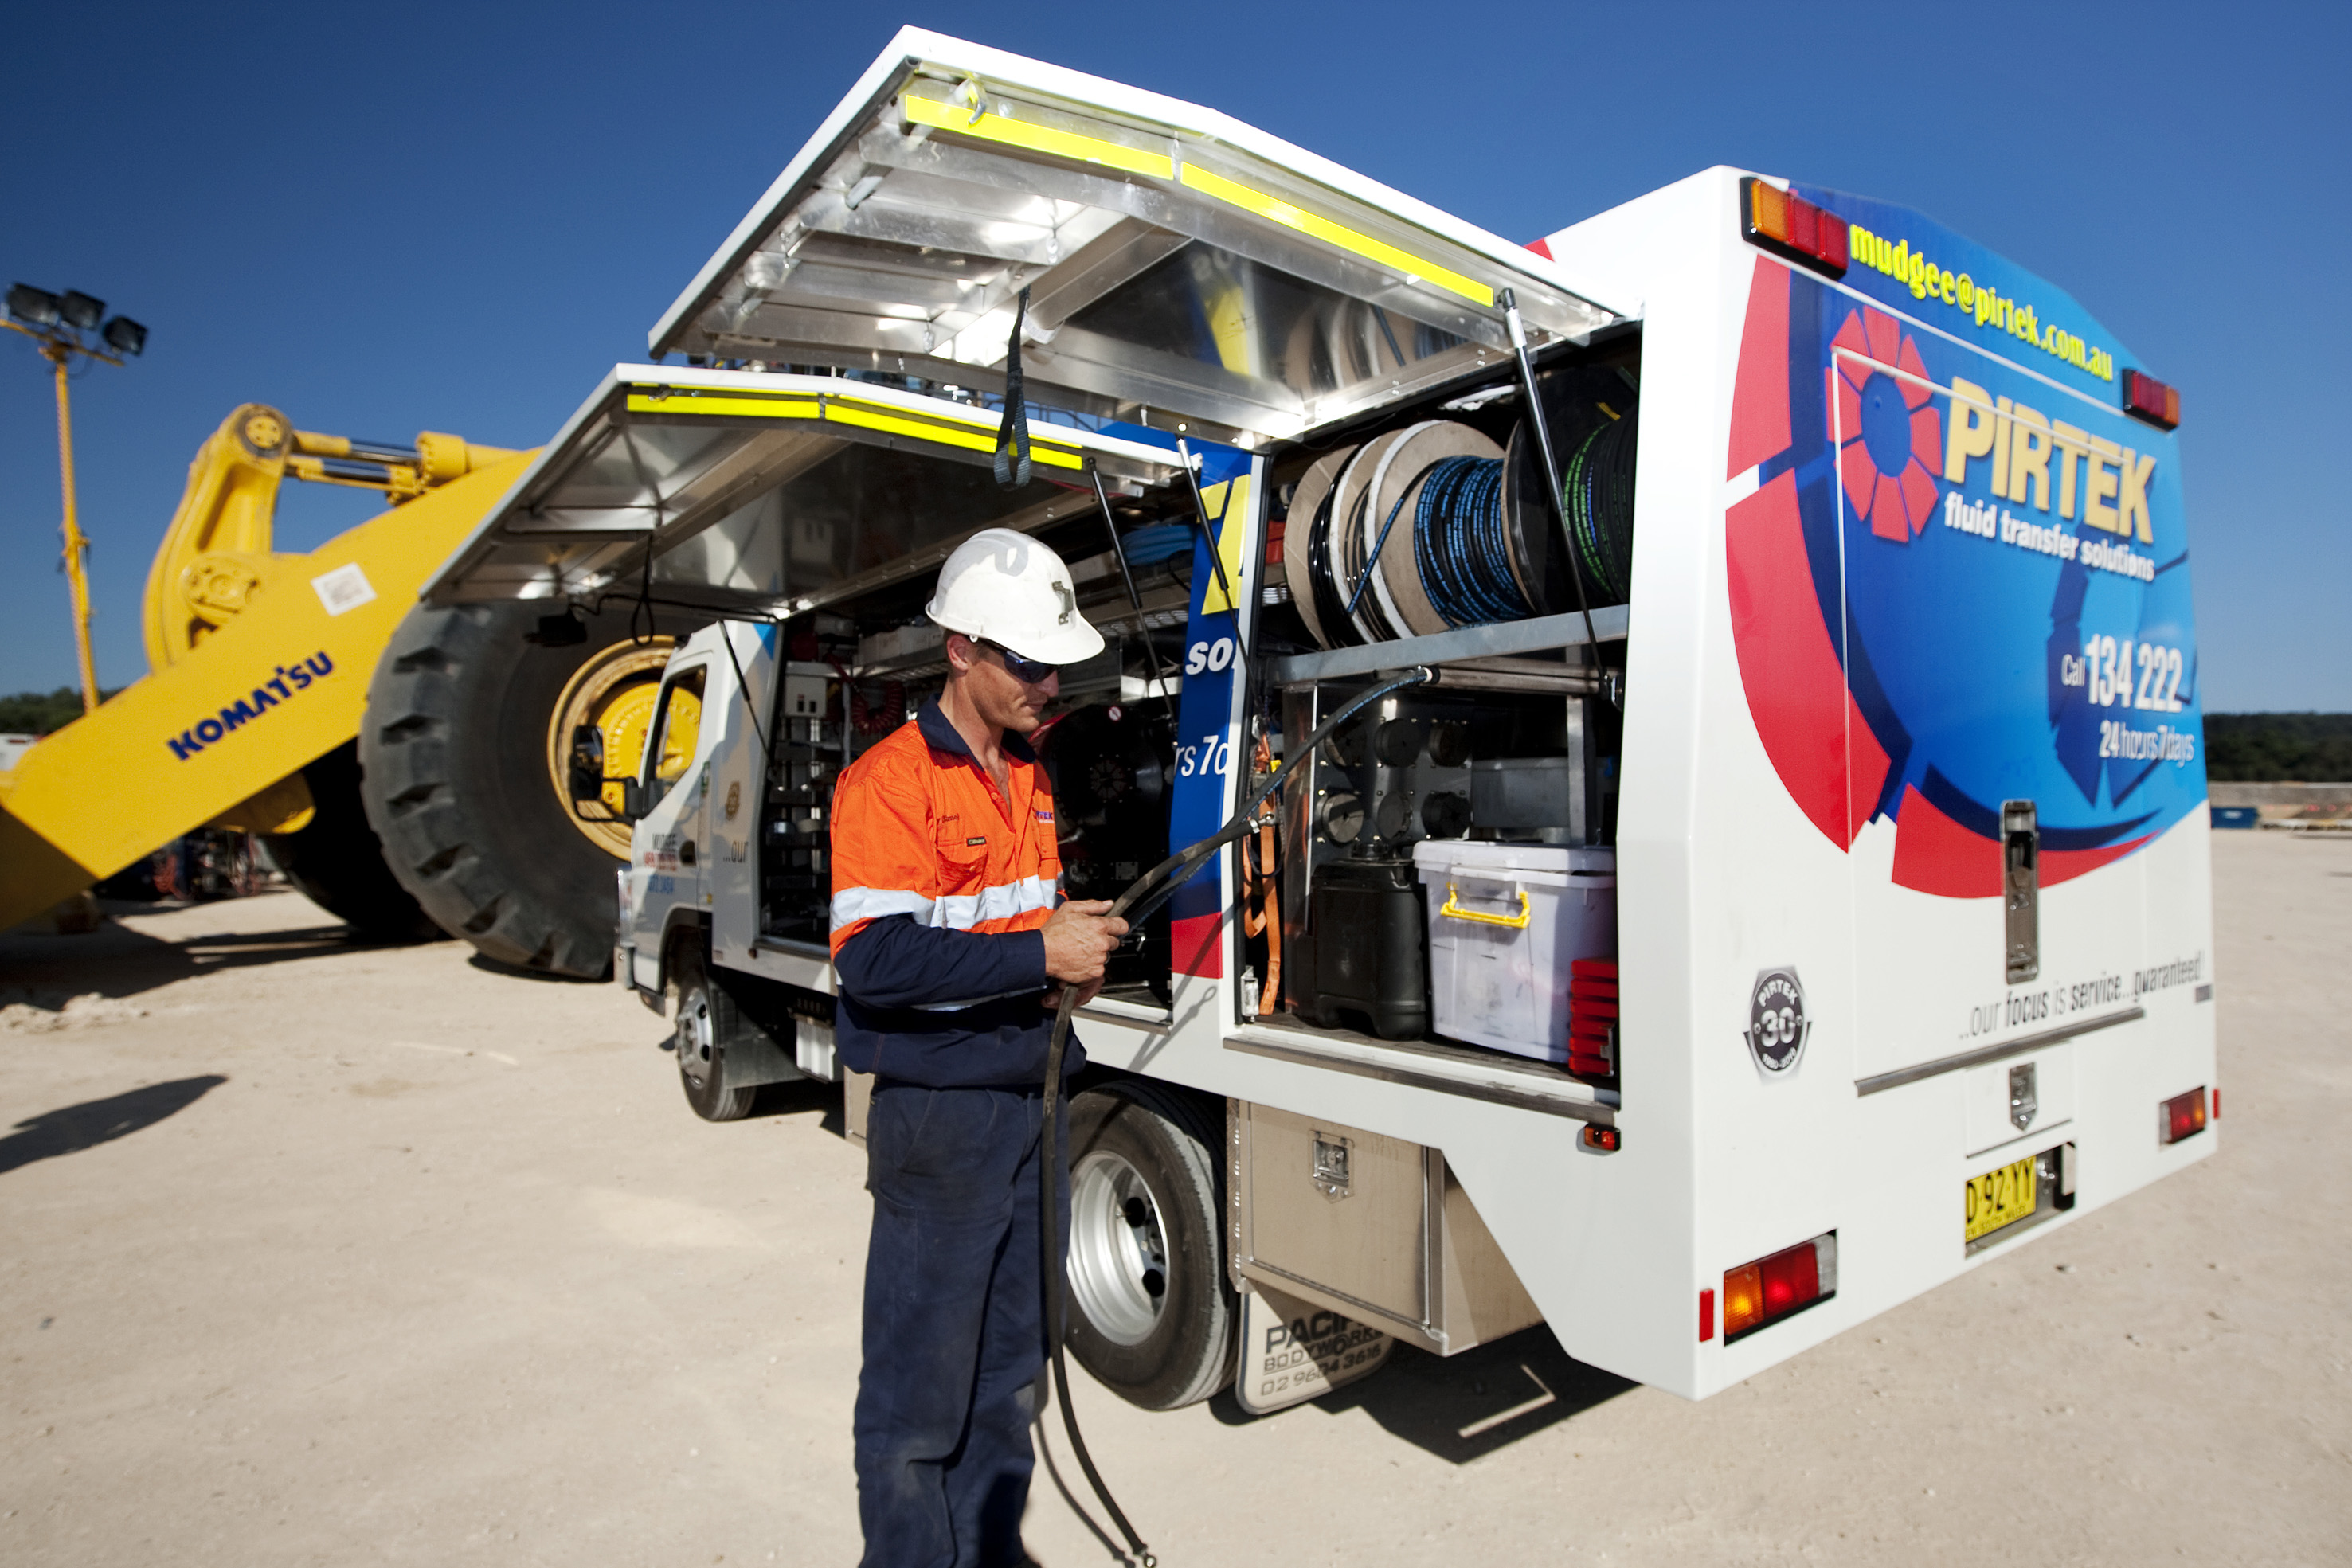 Pirtek Franchise Available - Esperance/ Albany